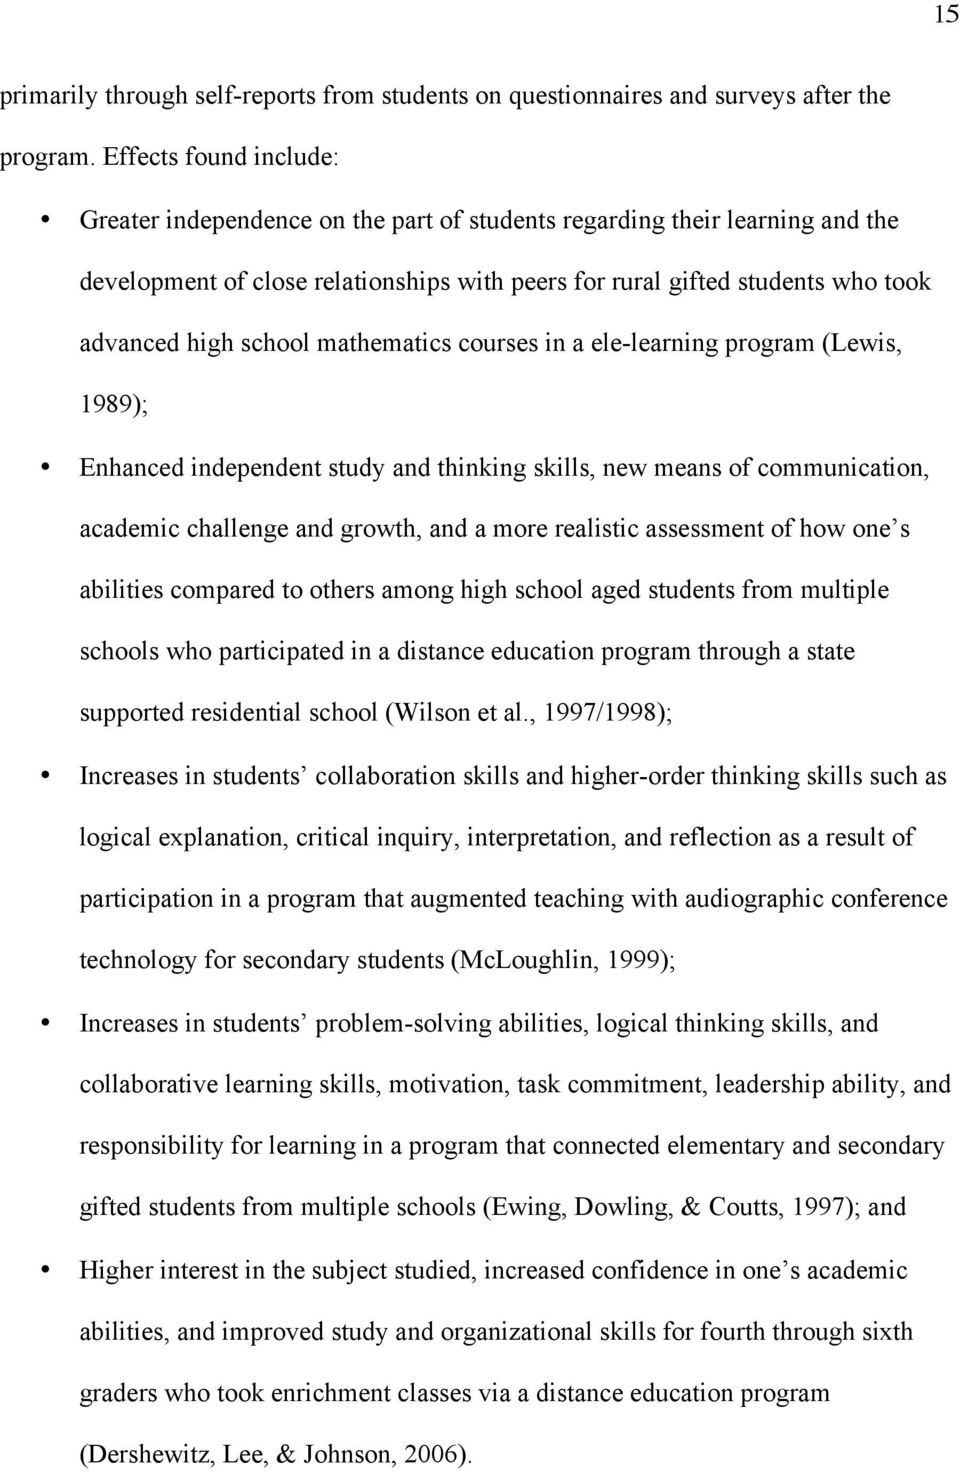 school mathematics courses in a ele-learning program (Lewis, 1989); Enhanced independent study and thinking skills, new means of communication, academic challenge and growth, and a more realistic